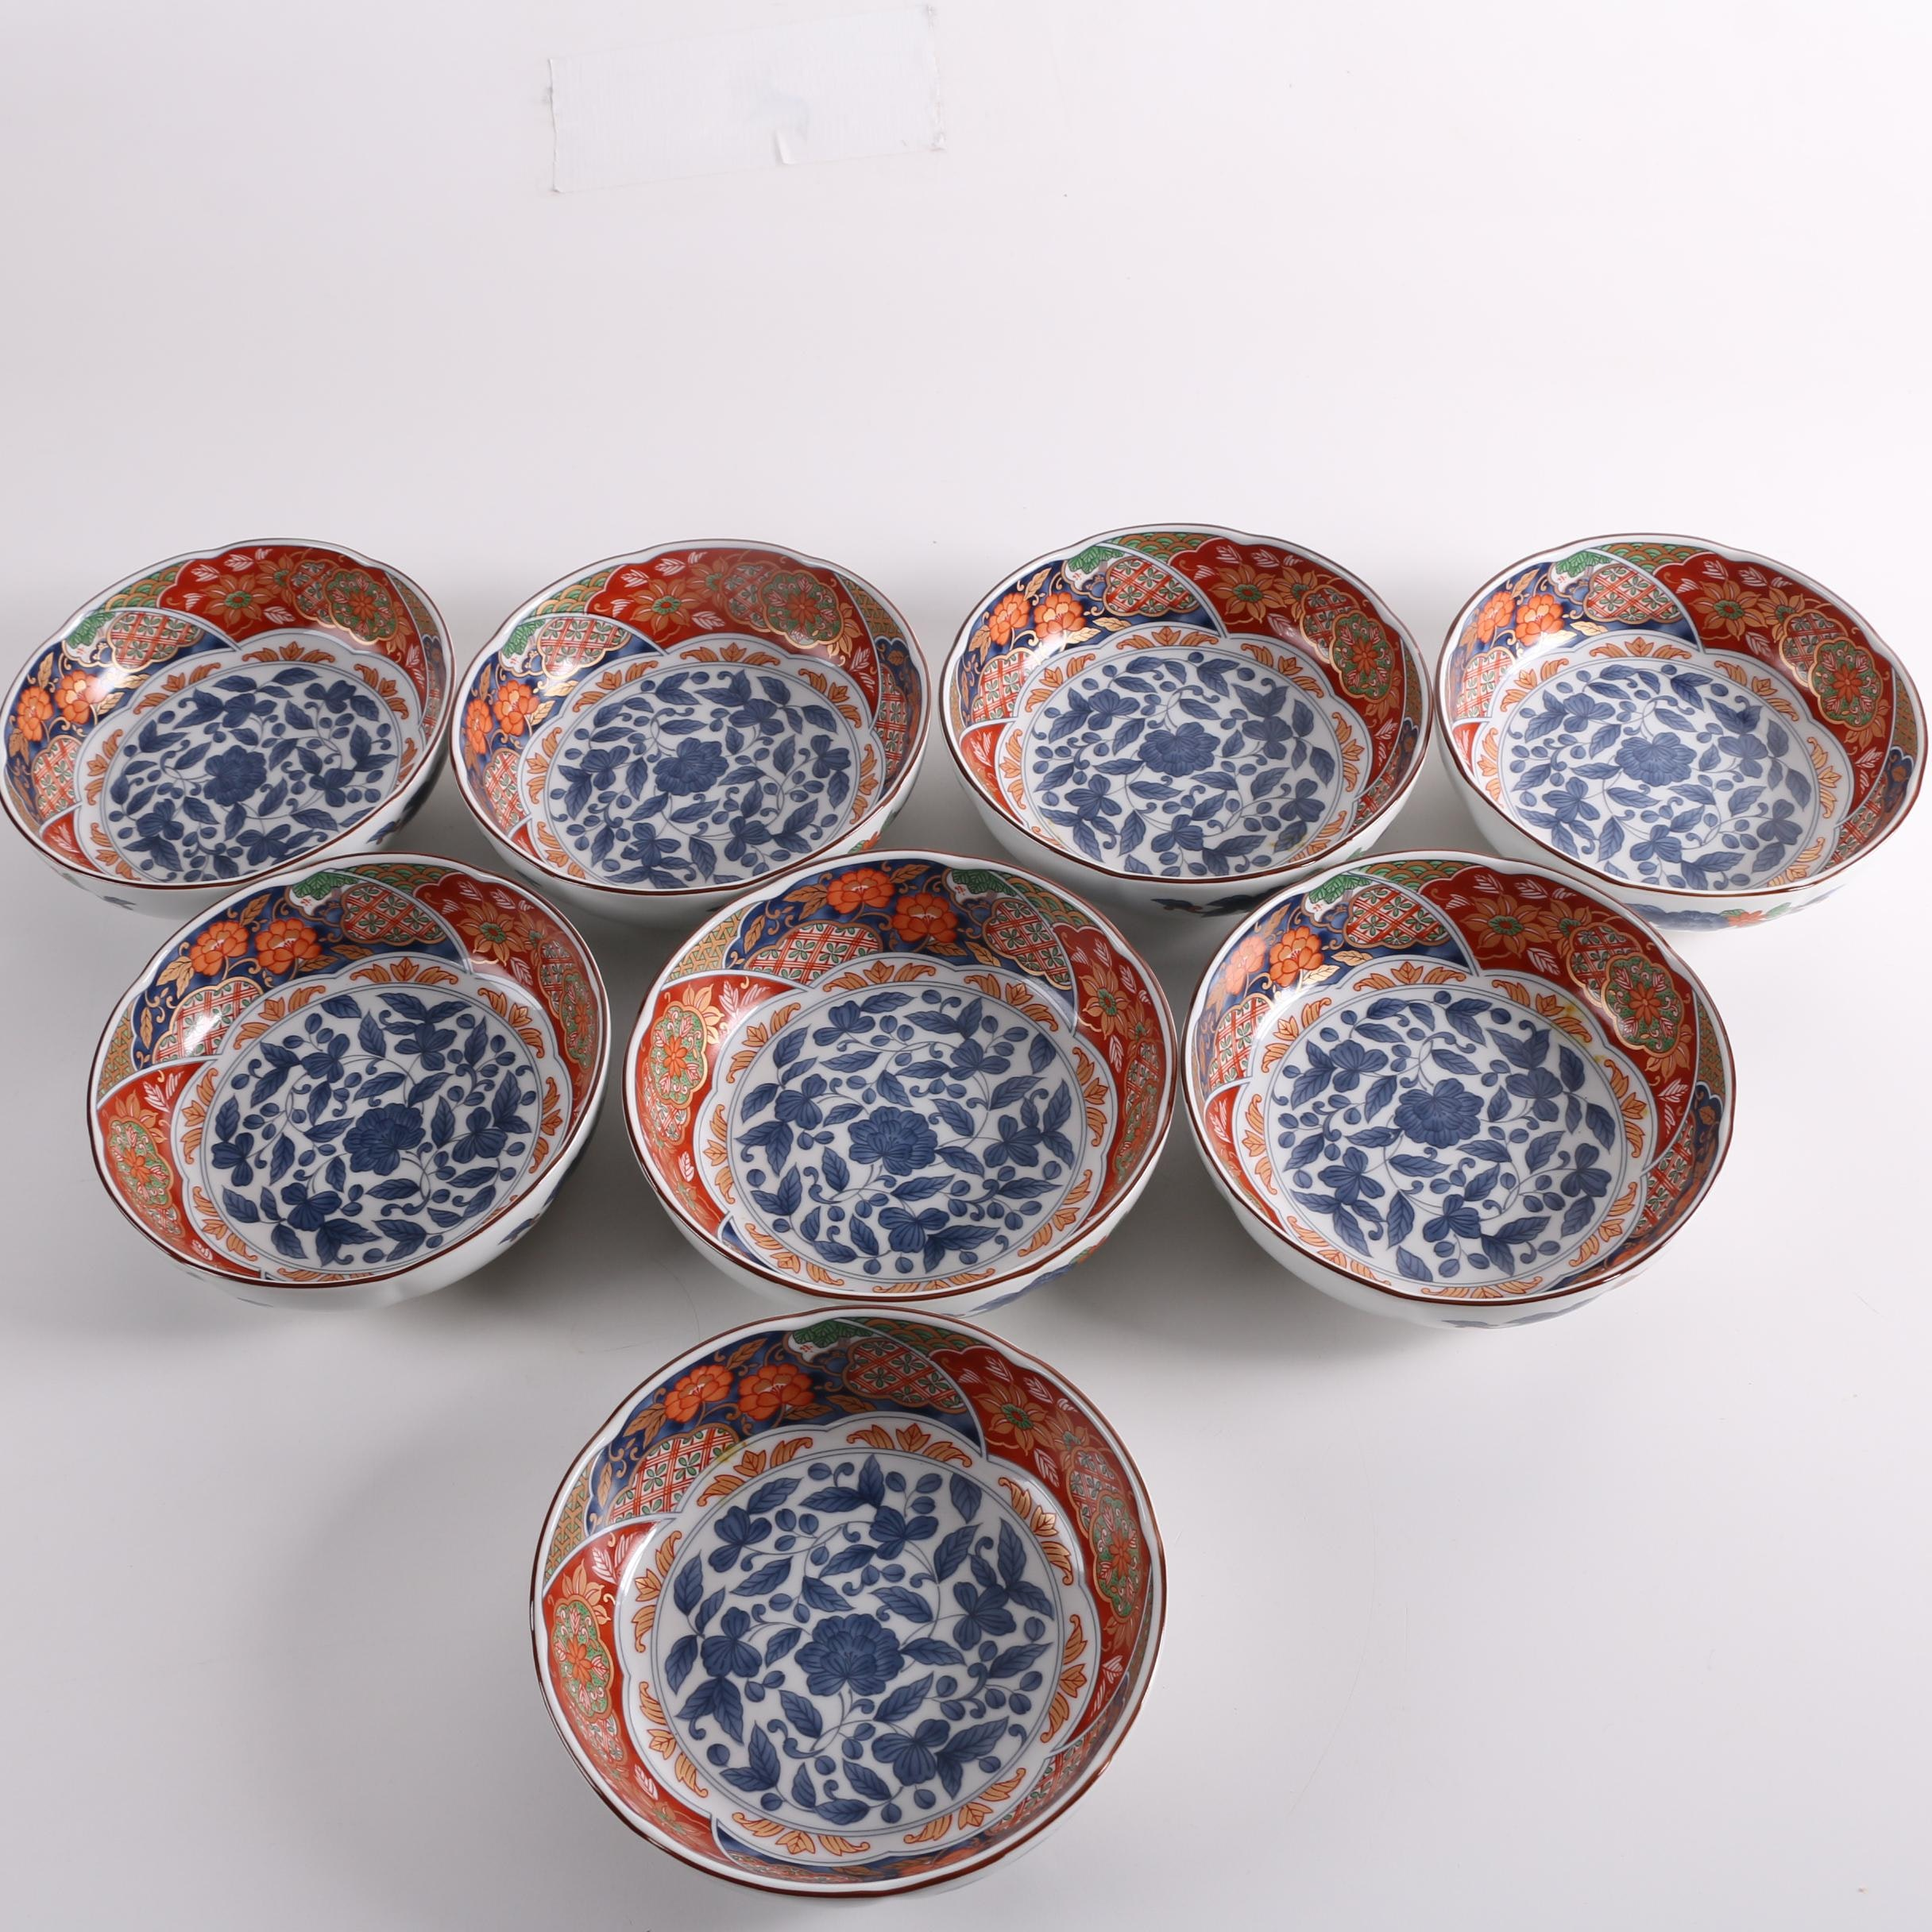 Contemporary Japanese Imari Porcelain Bowls